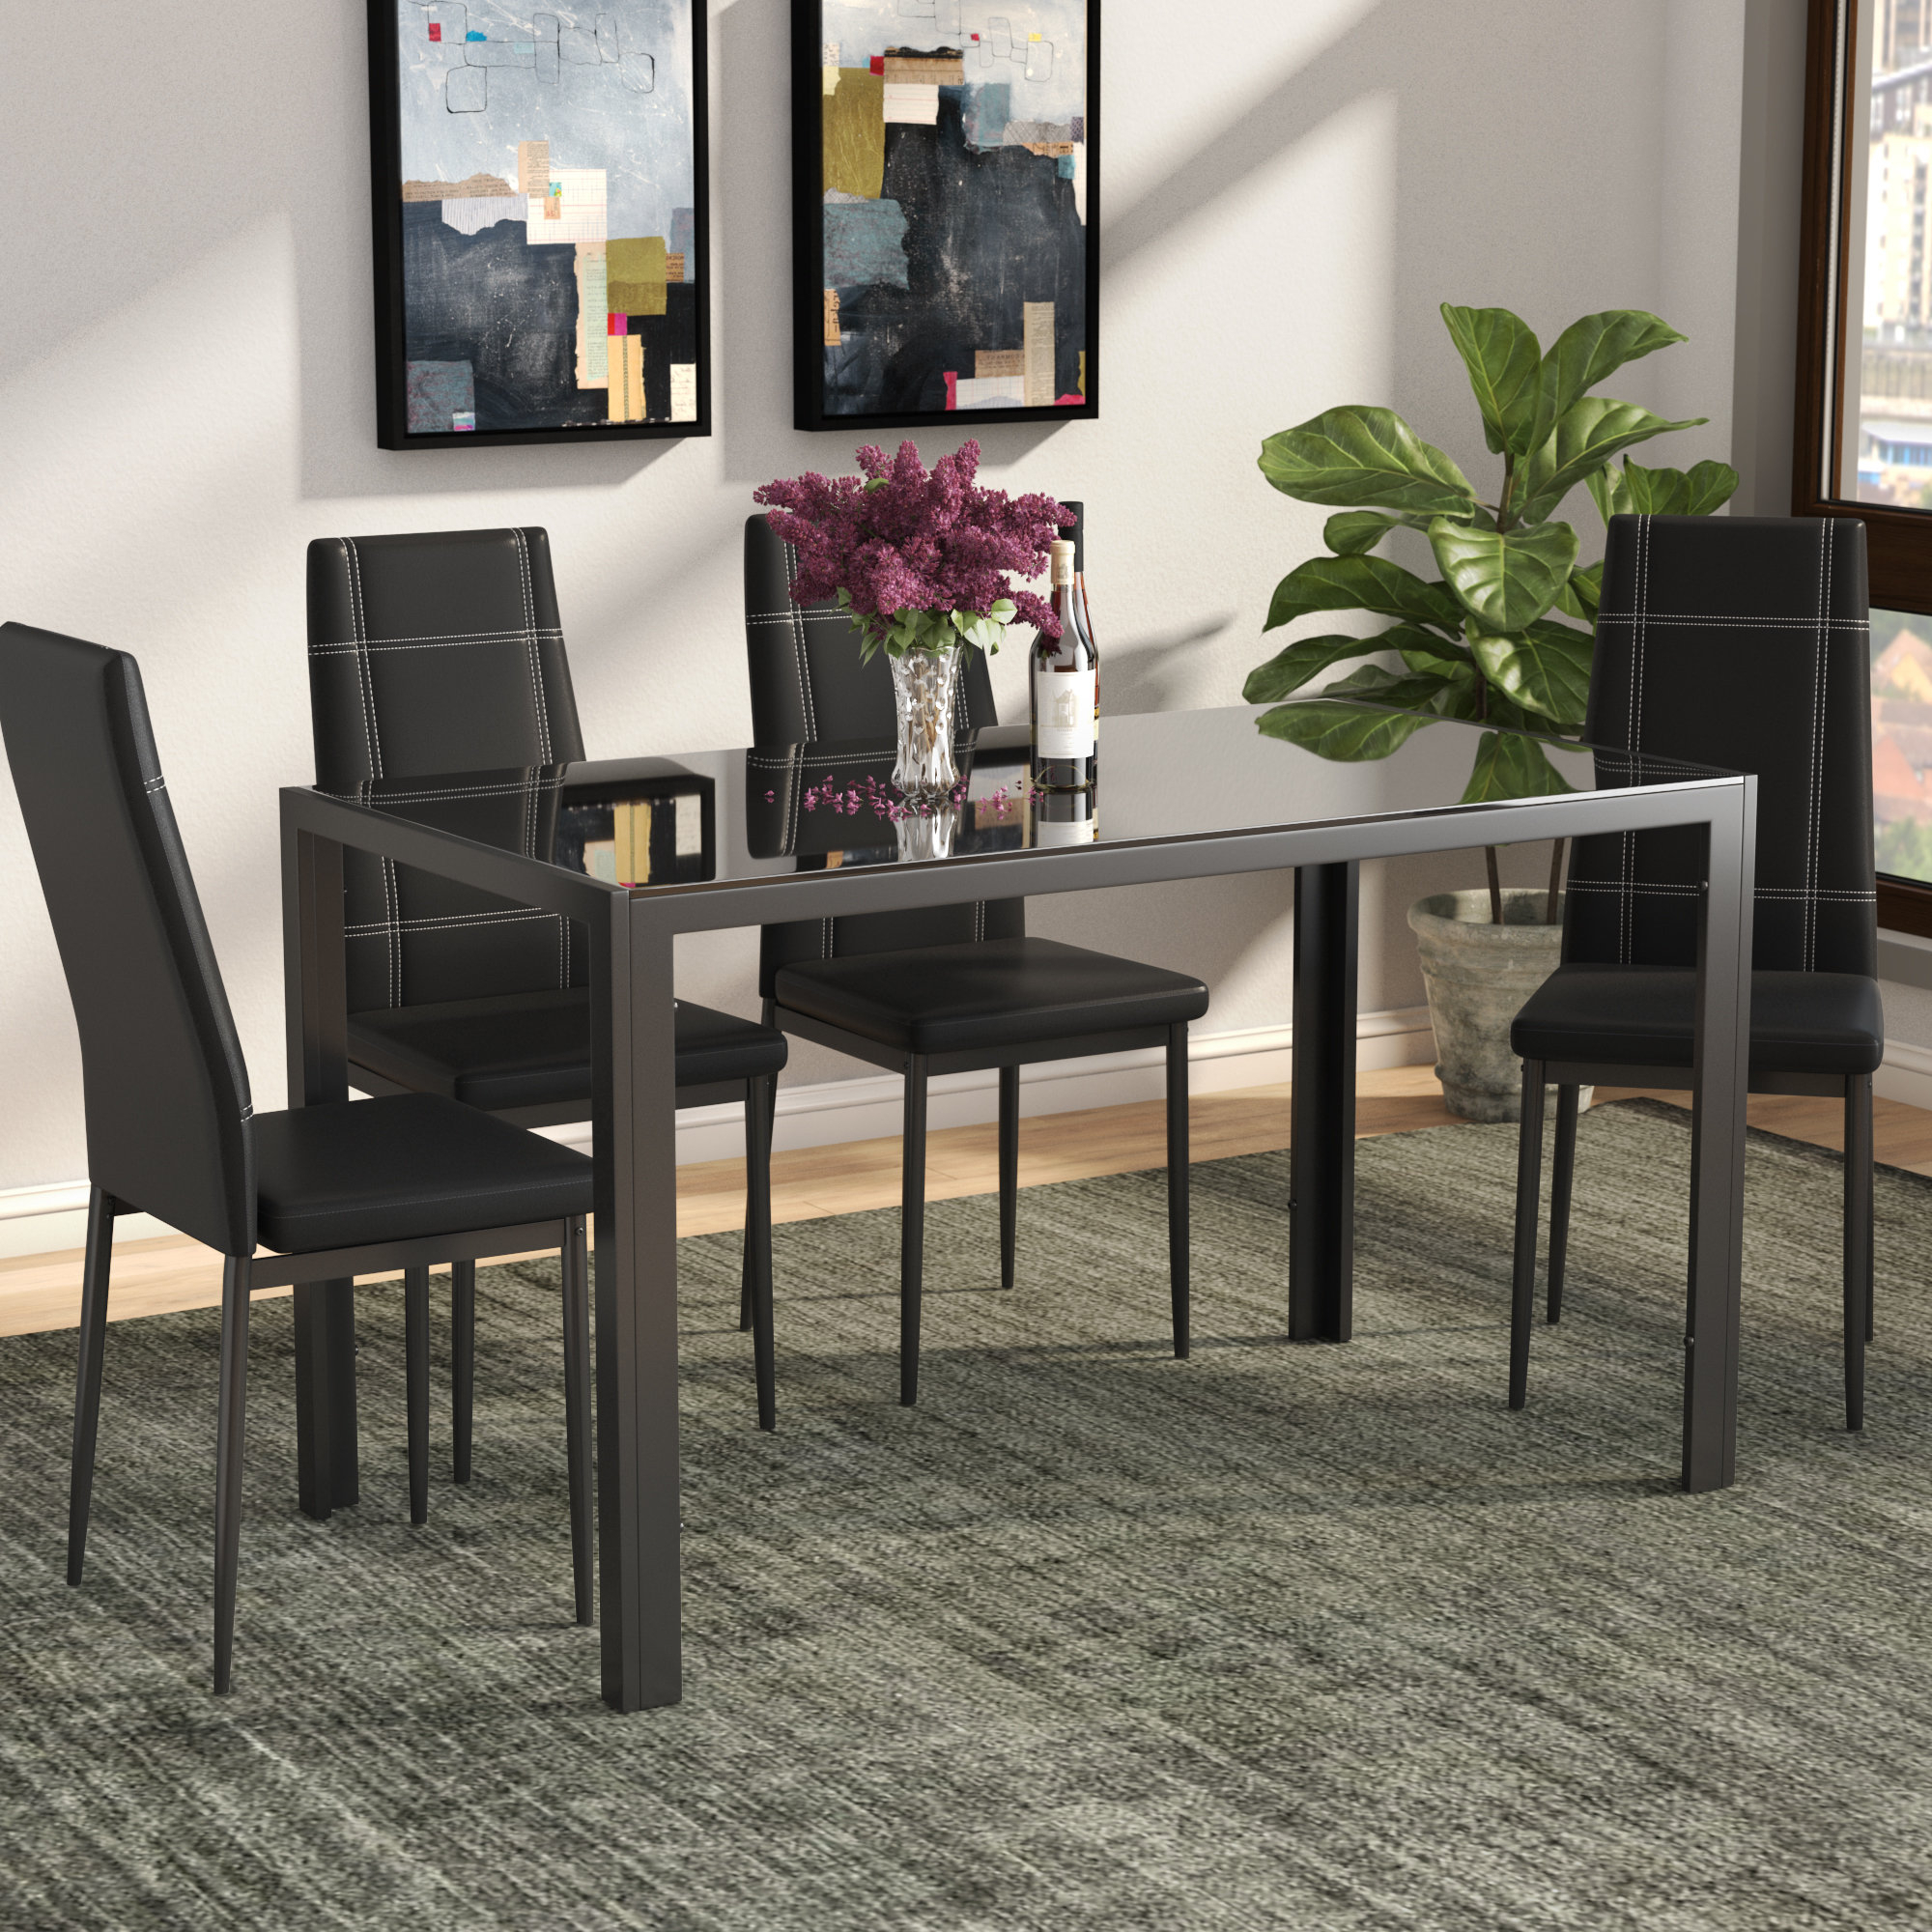 Favorite Ebern Designs Maynard 5 Piece Dining Set & Reviews (View 16 of 25)